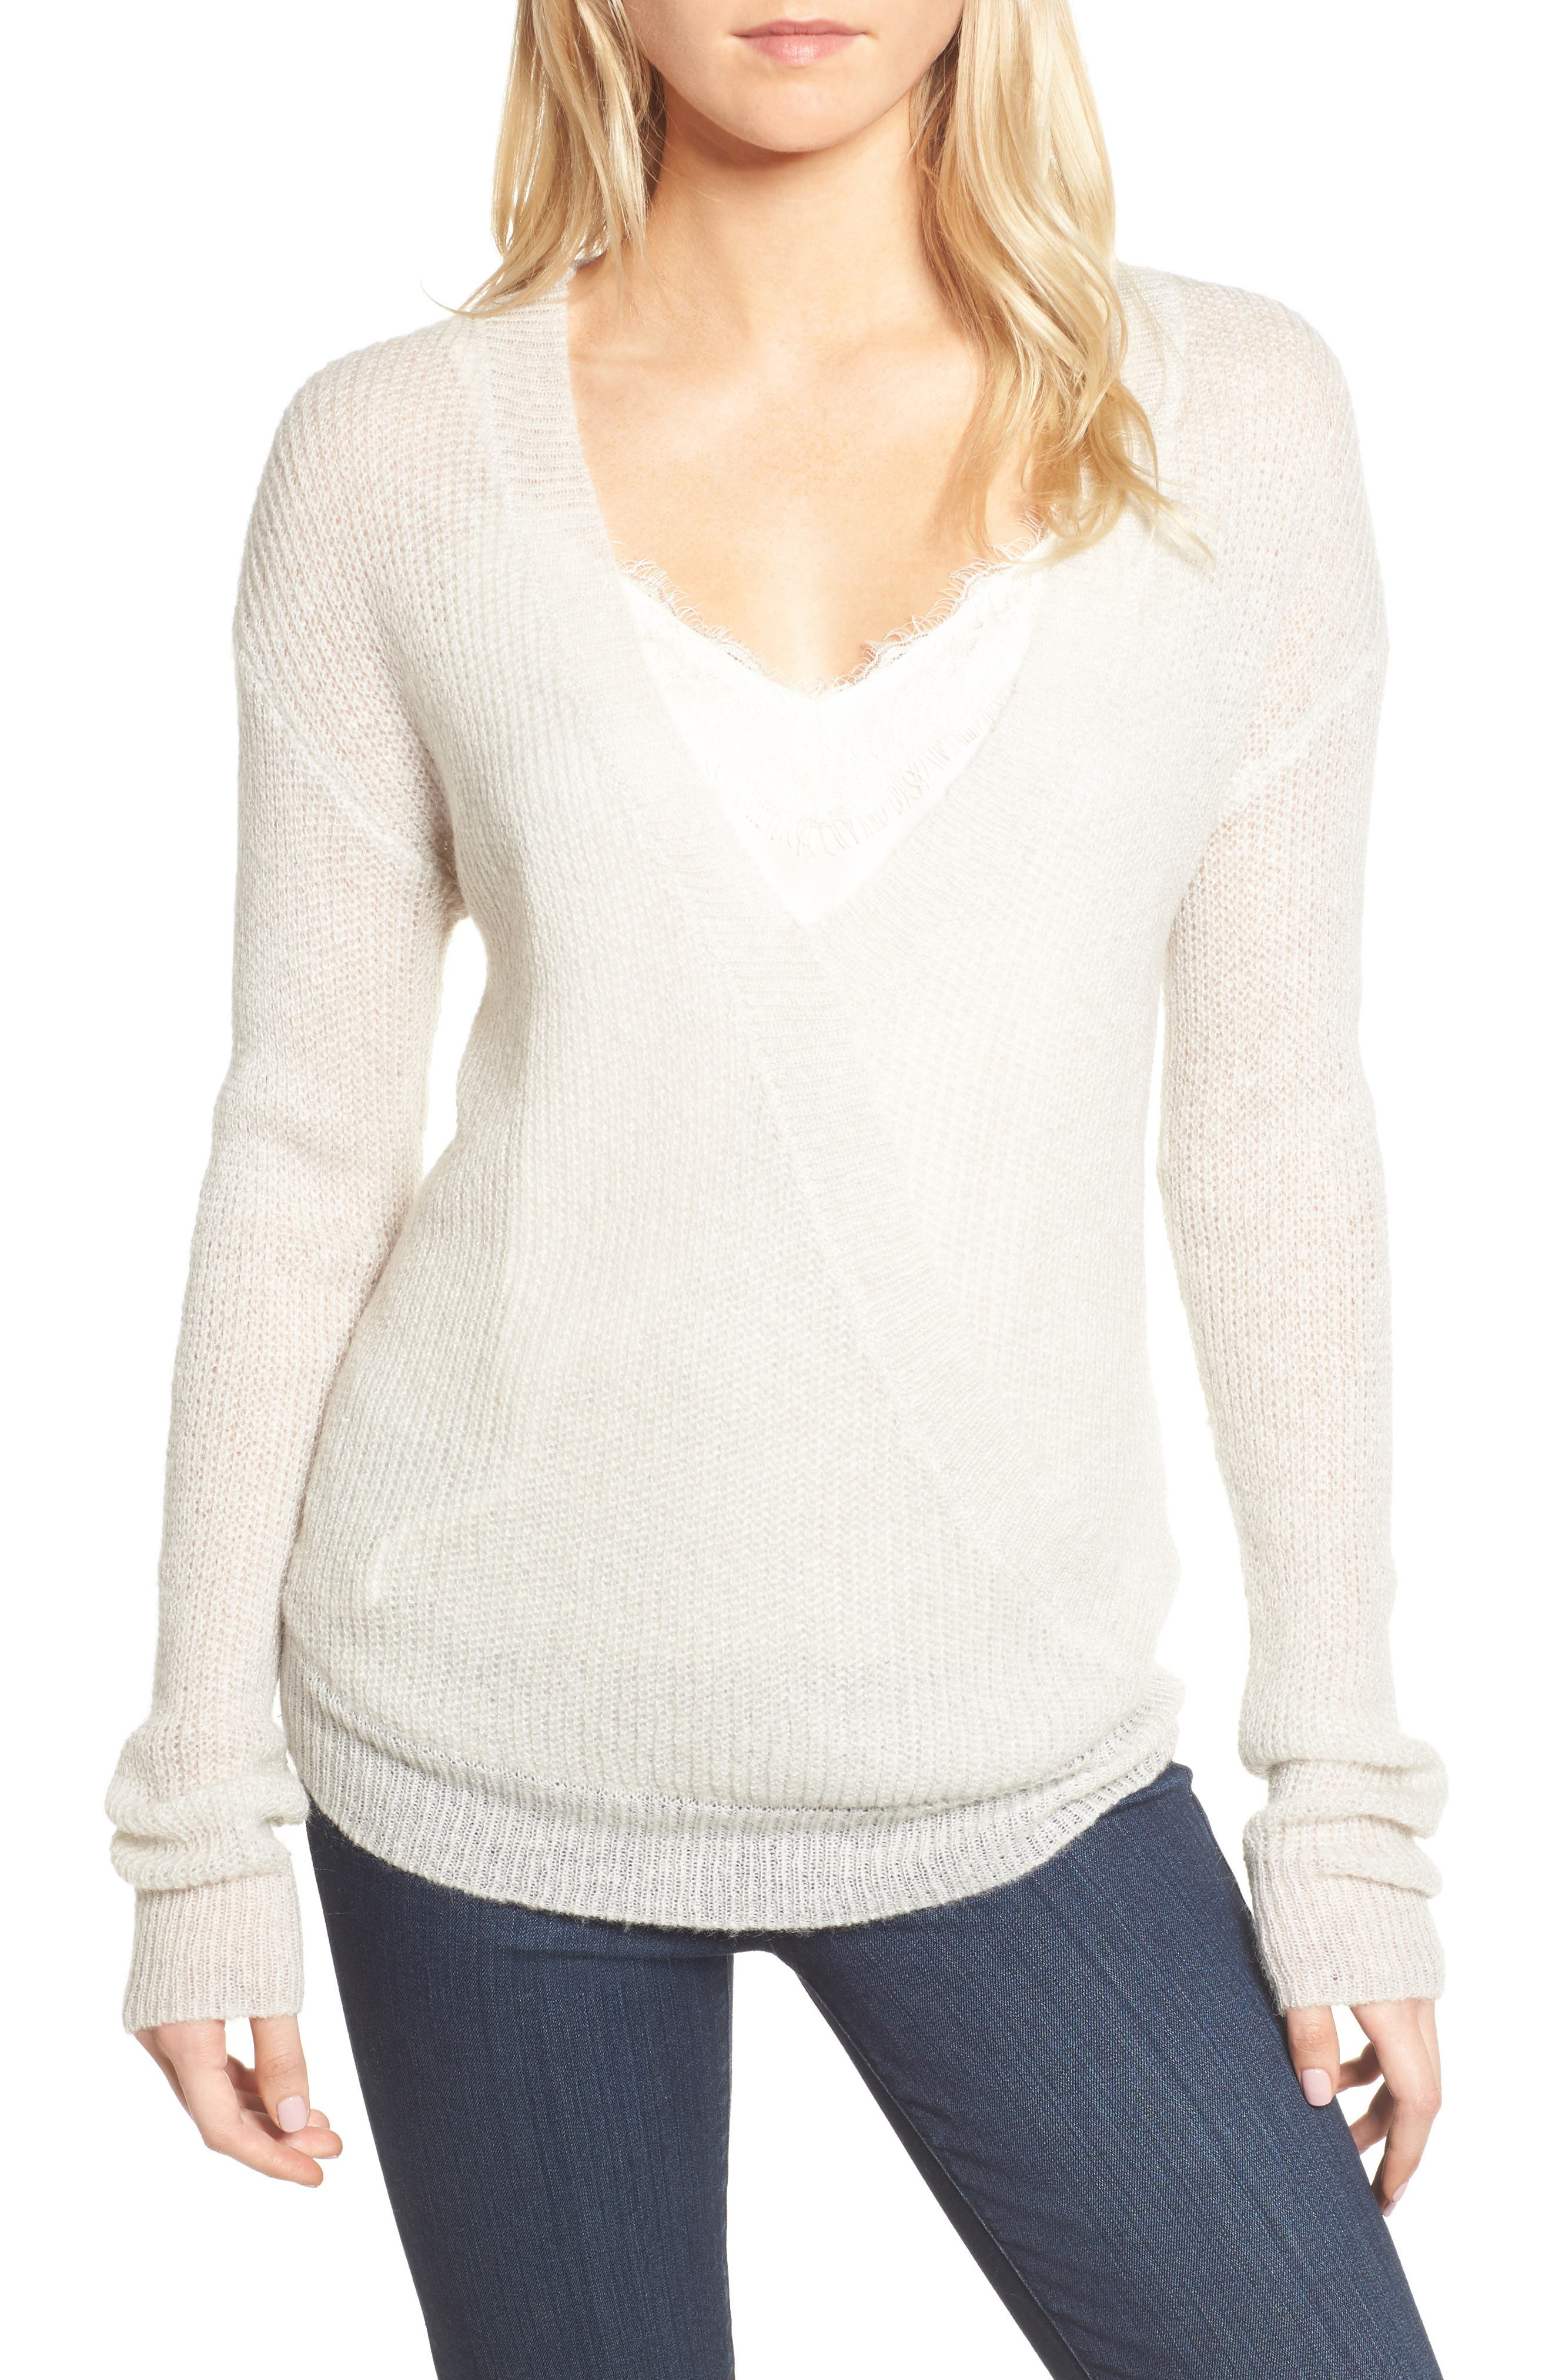 cupcakes and cashmere Sternberg V-Neck Sweater